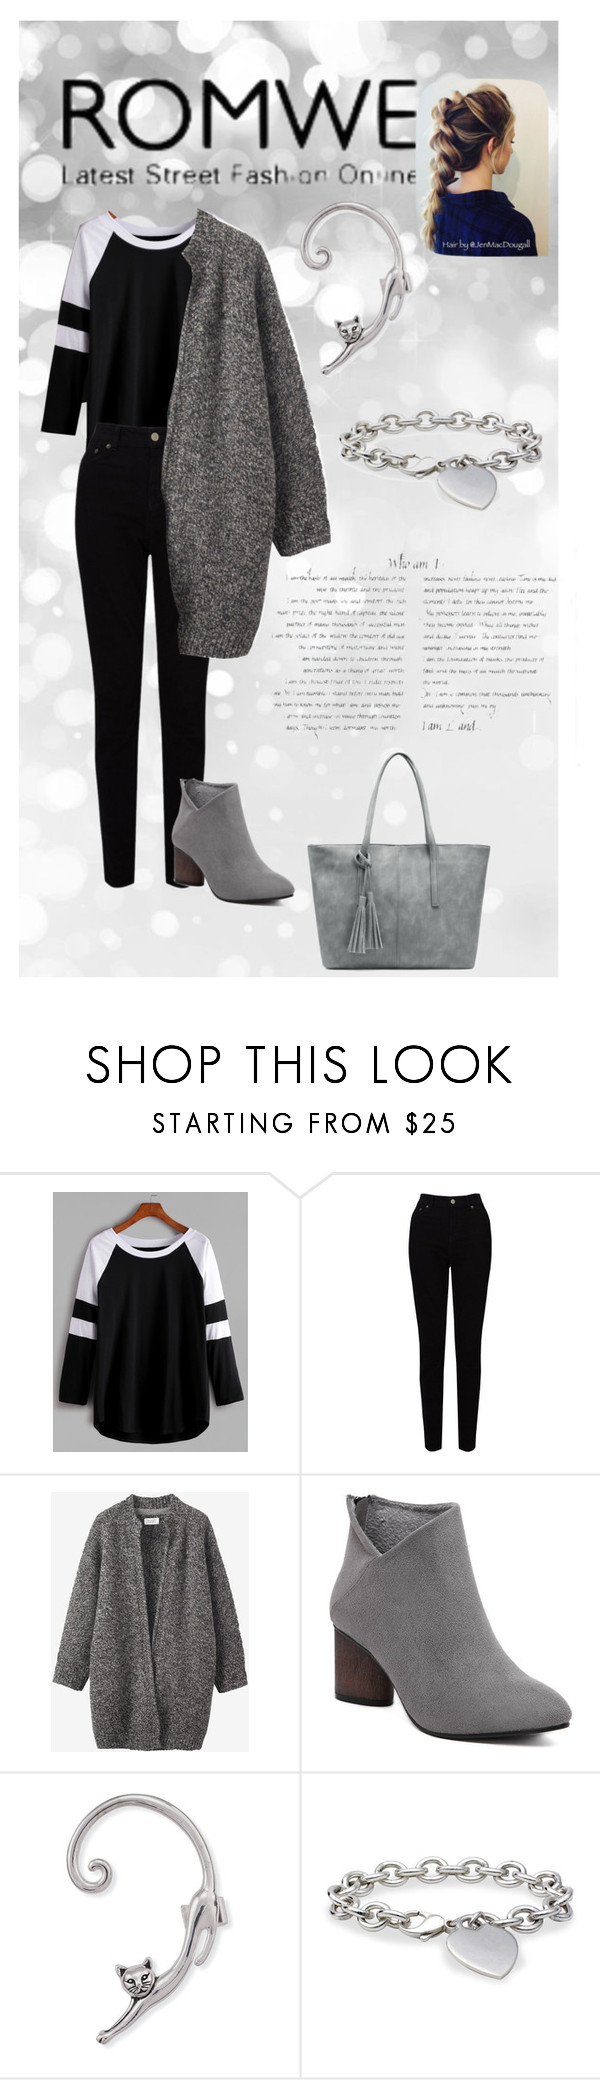 """""""CONTEST WITH PRIZE: Black And White Contrast Raglan Sleeve T-shirt"""" by tarik-azra ❤ liked on Polyvore featuring EAST, Toast and Blue Nile"""